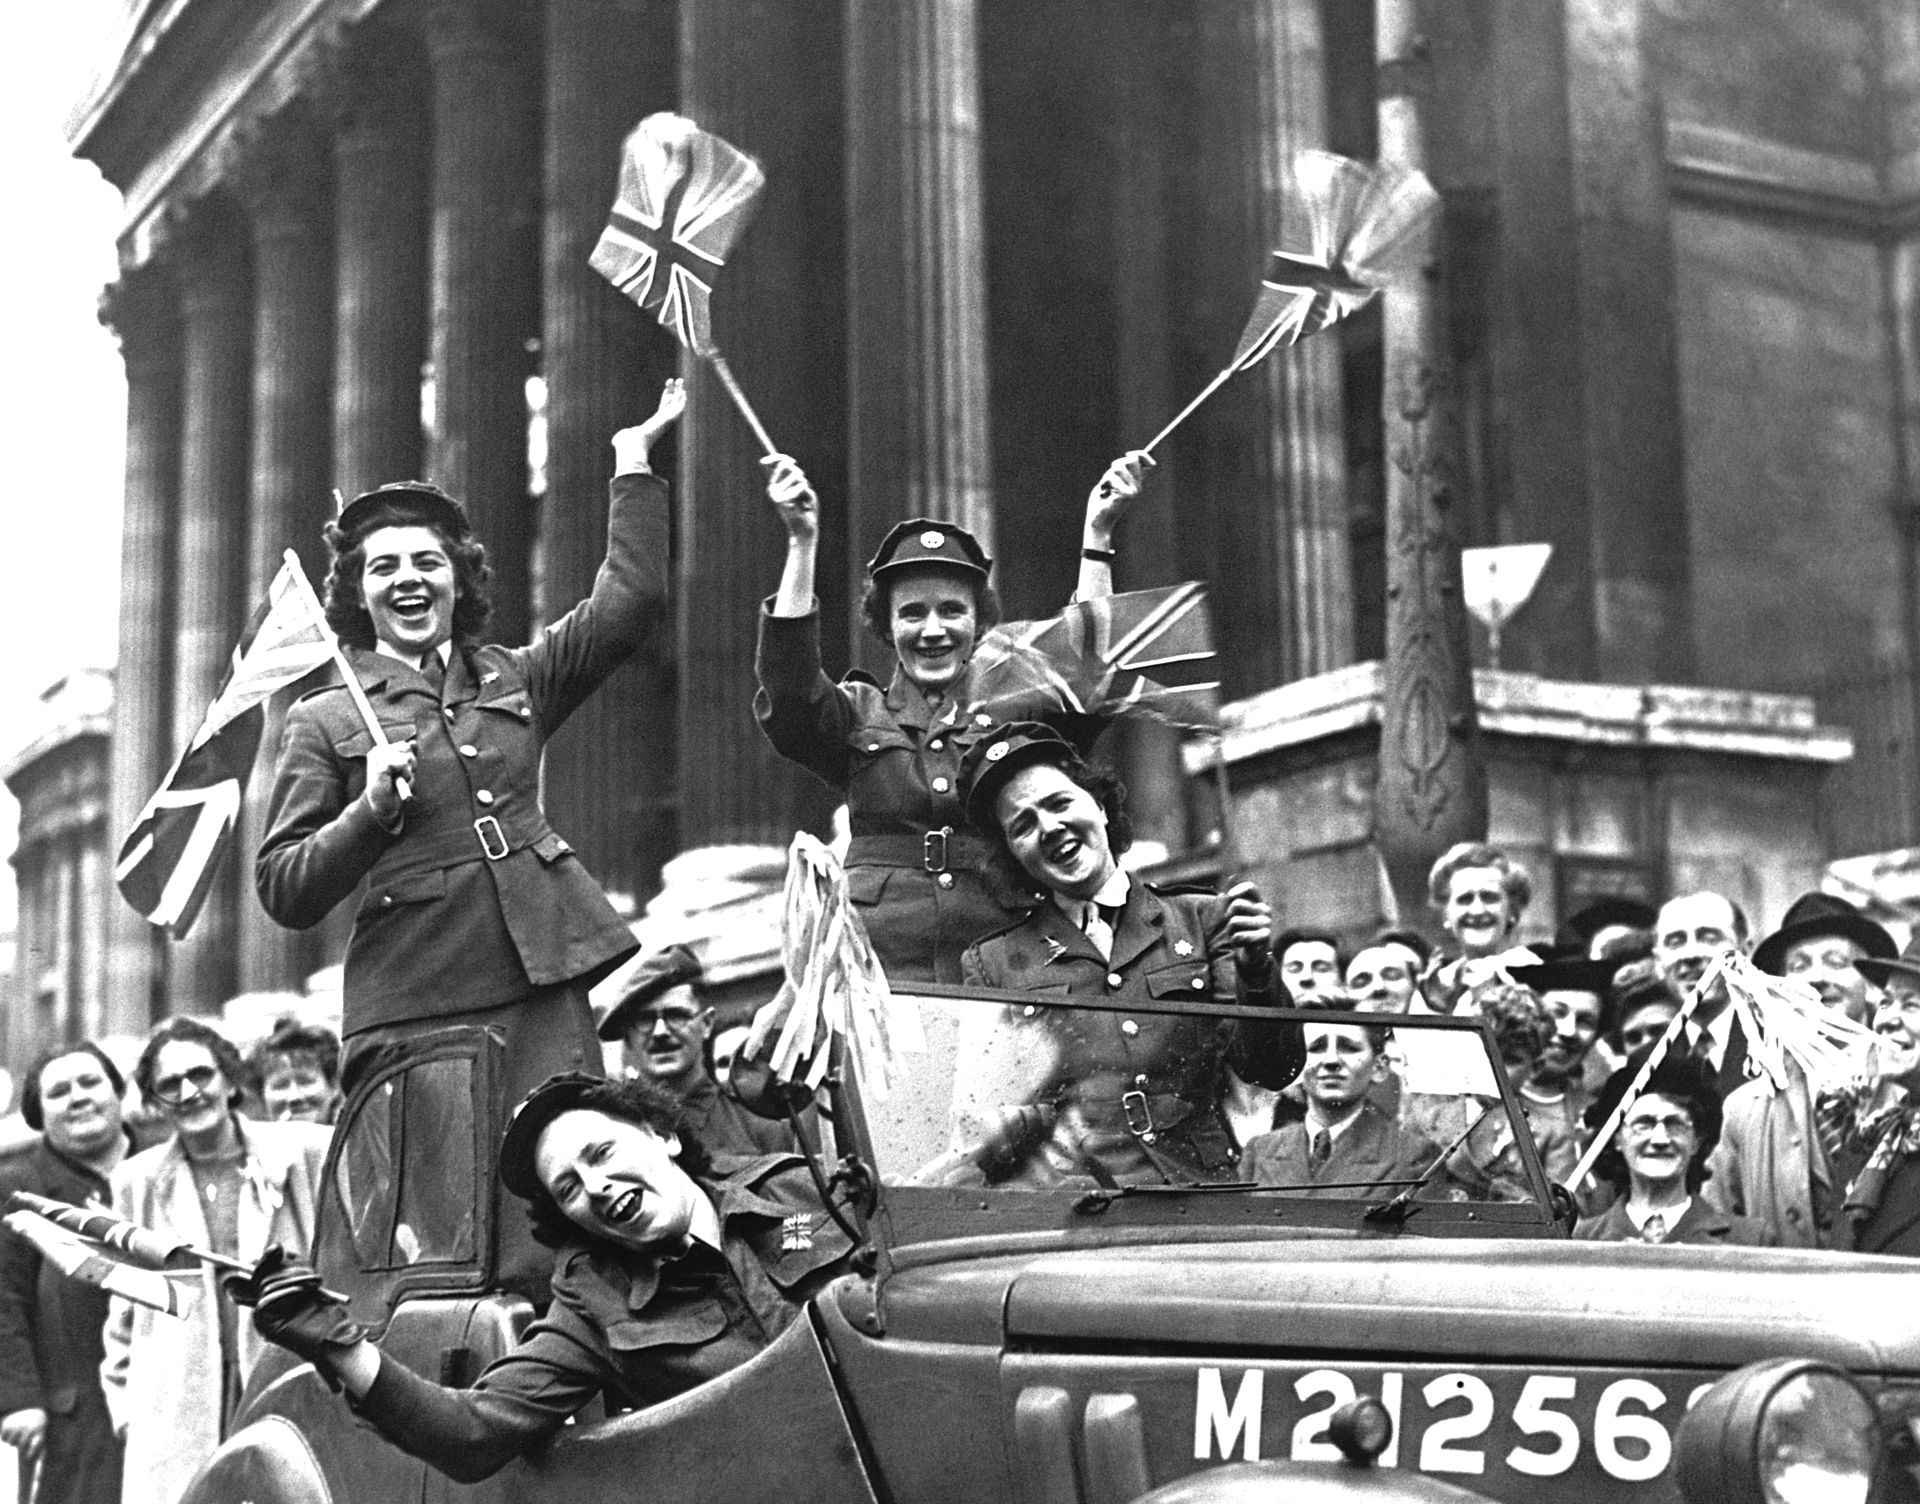 VE Day Facts   VE Day WWII   DK Find Out